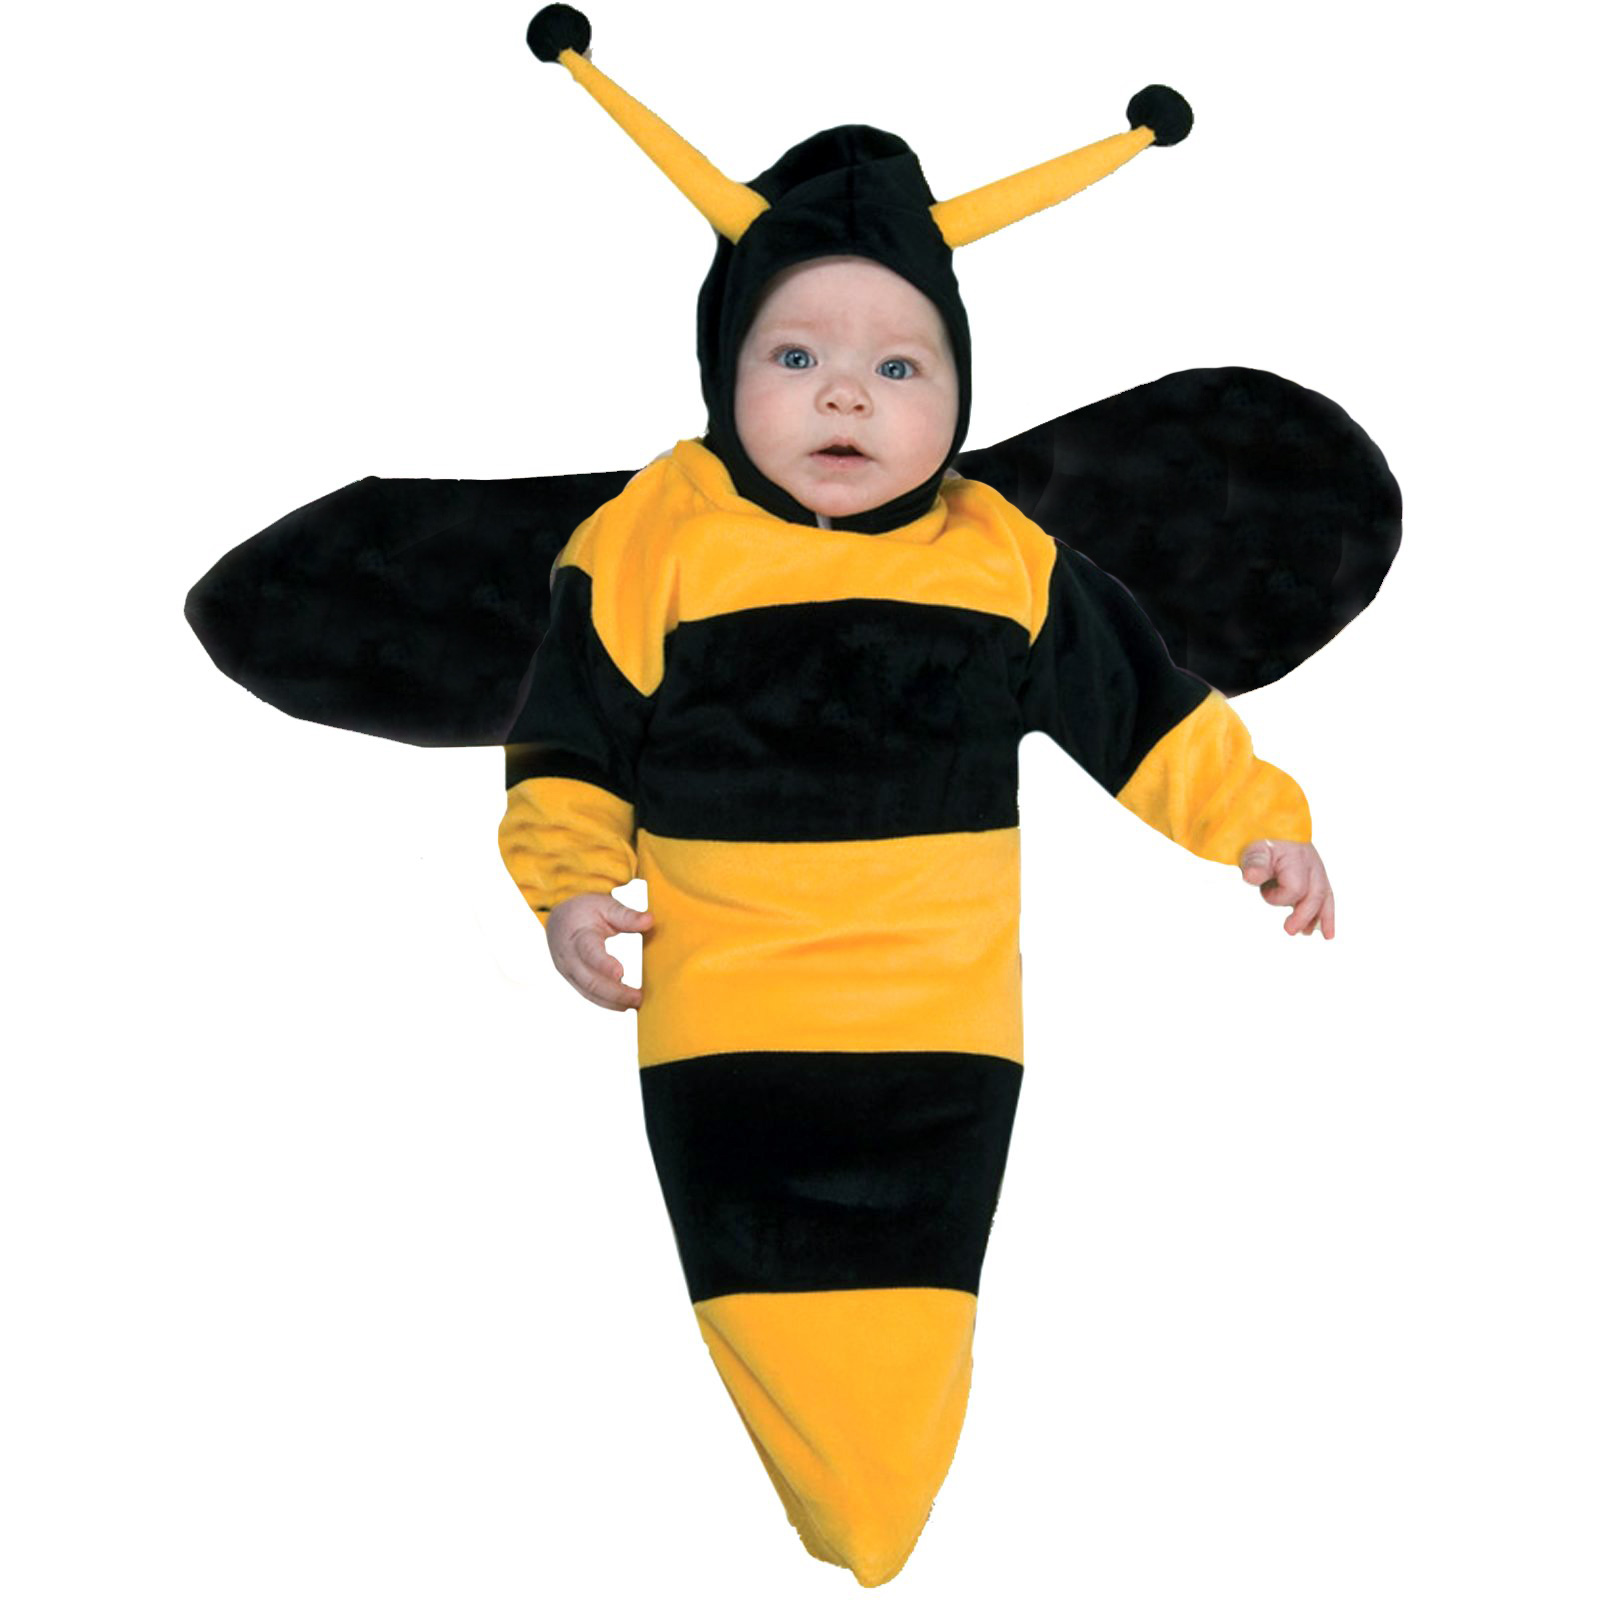 Bumble Bee Bunting Infant Halloween Costume, Size 0-6 Months